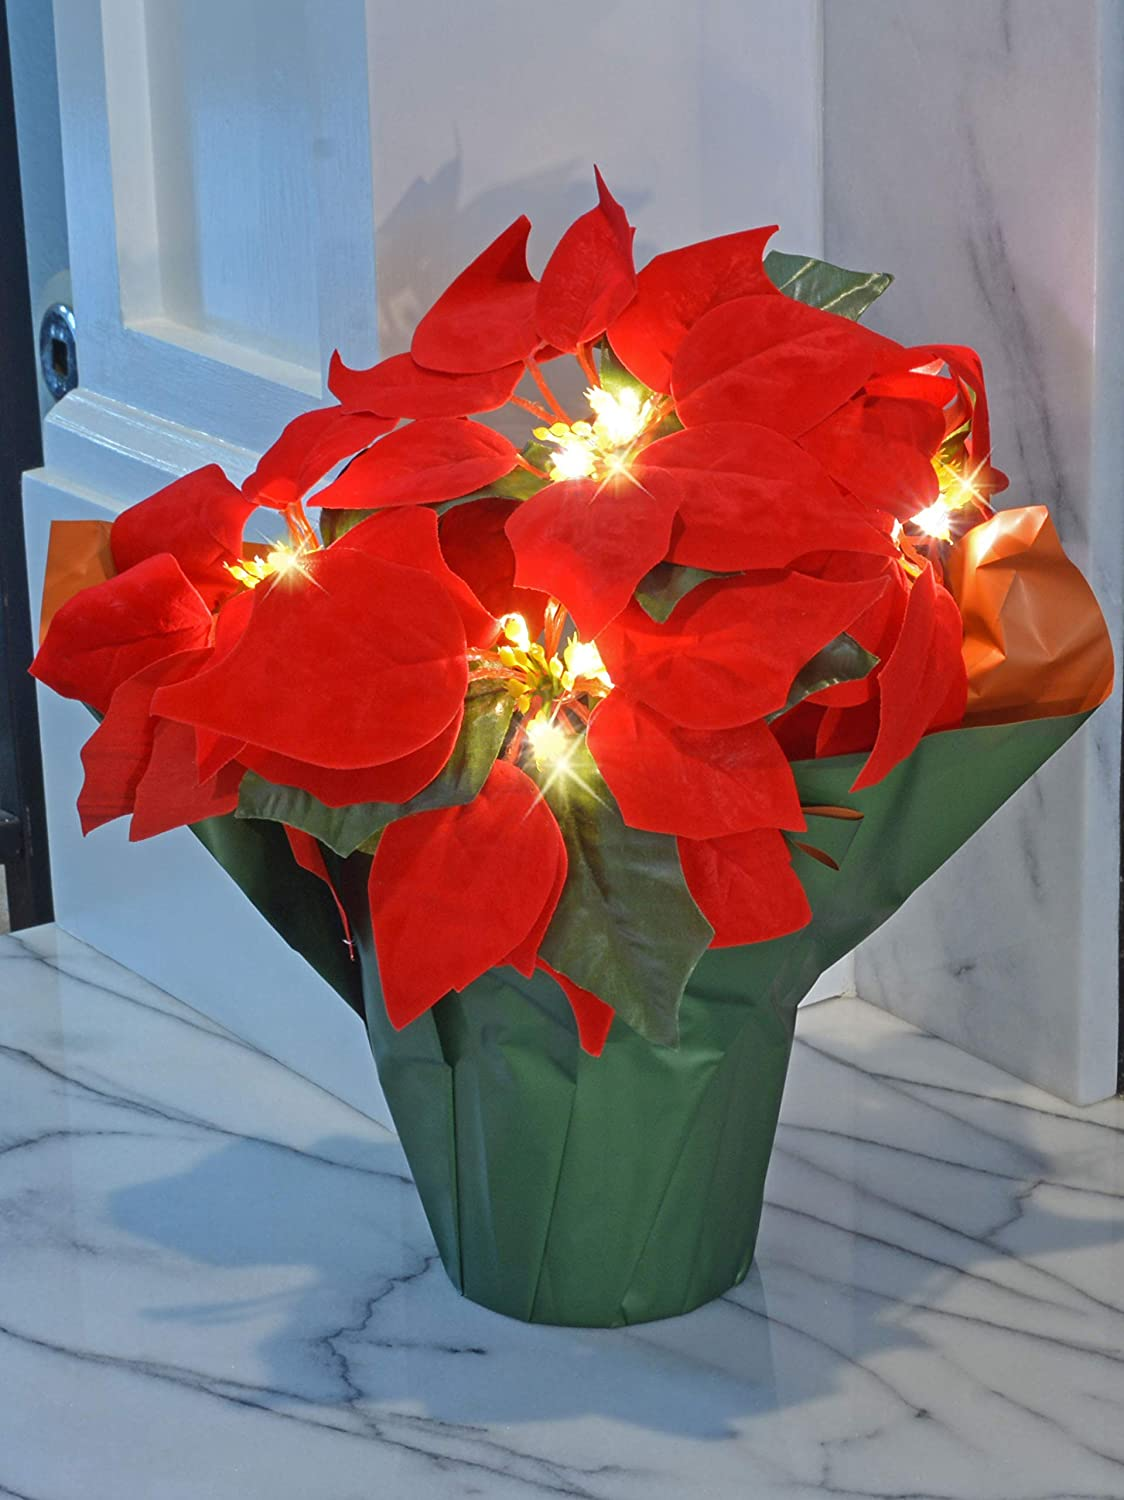 TenWaterloo 12 Inch High LED Lighted Artificial Red Christmas Potted Poinsettia Plant, Battery Operated with Timer